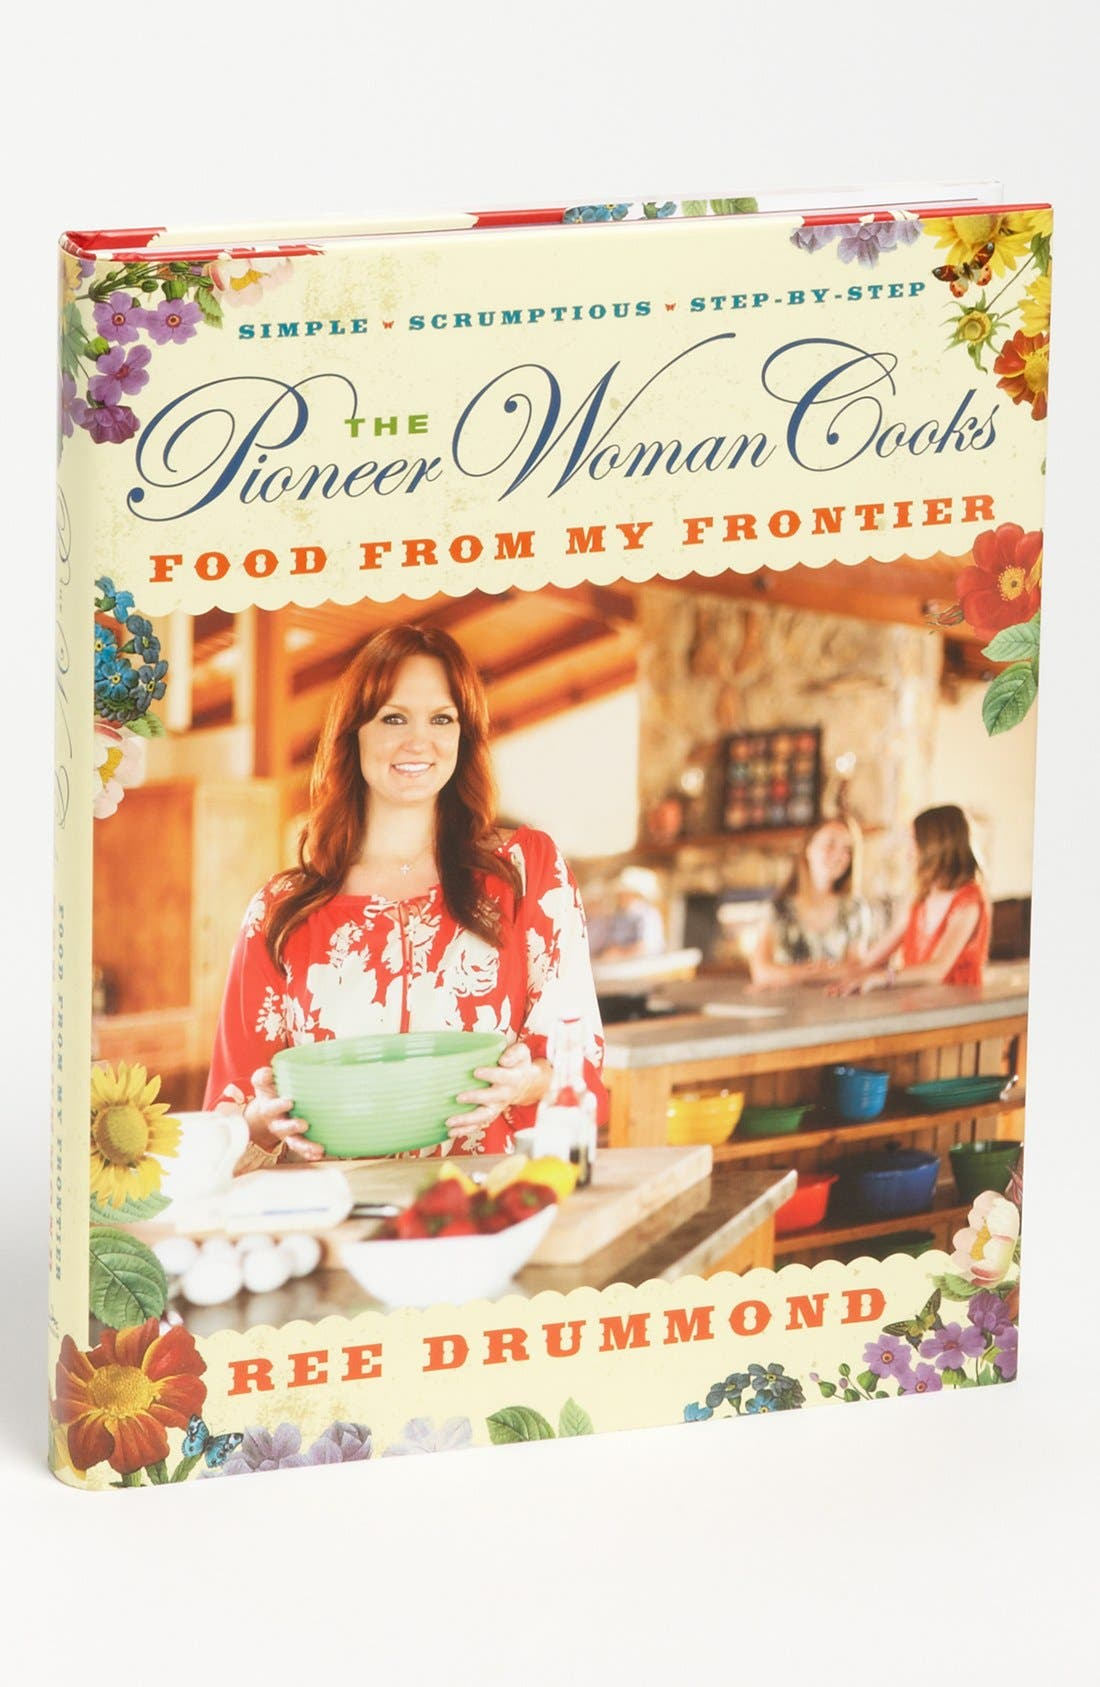 Main Image - 'The Pioneer Woman Cooks: Food from My Frontier' Cookbook